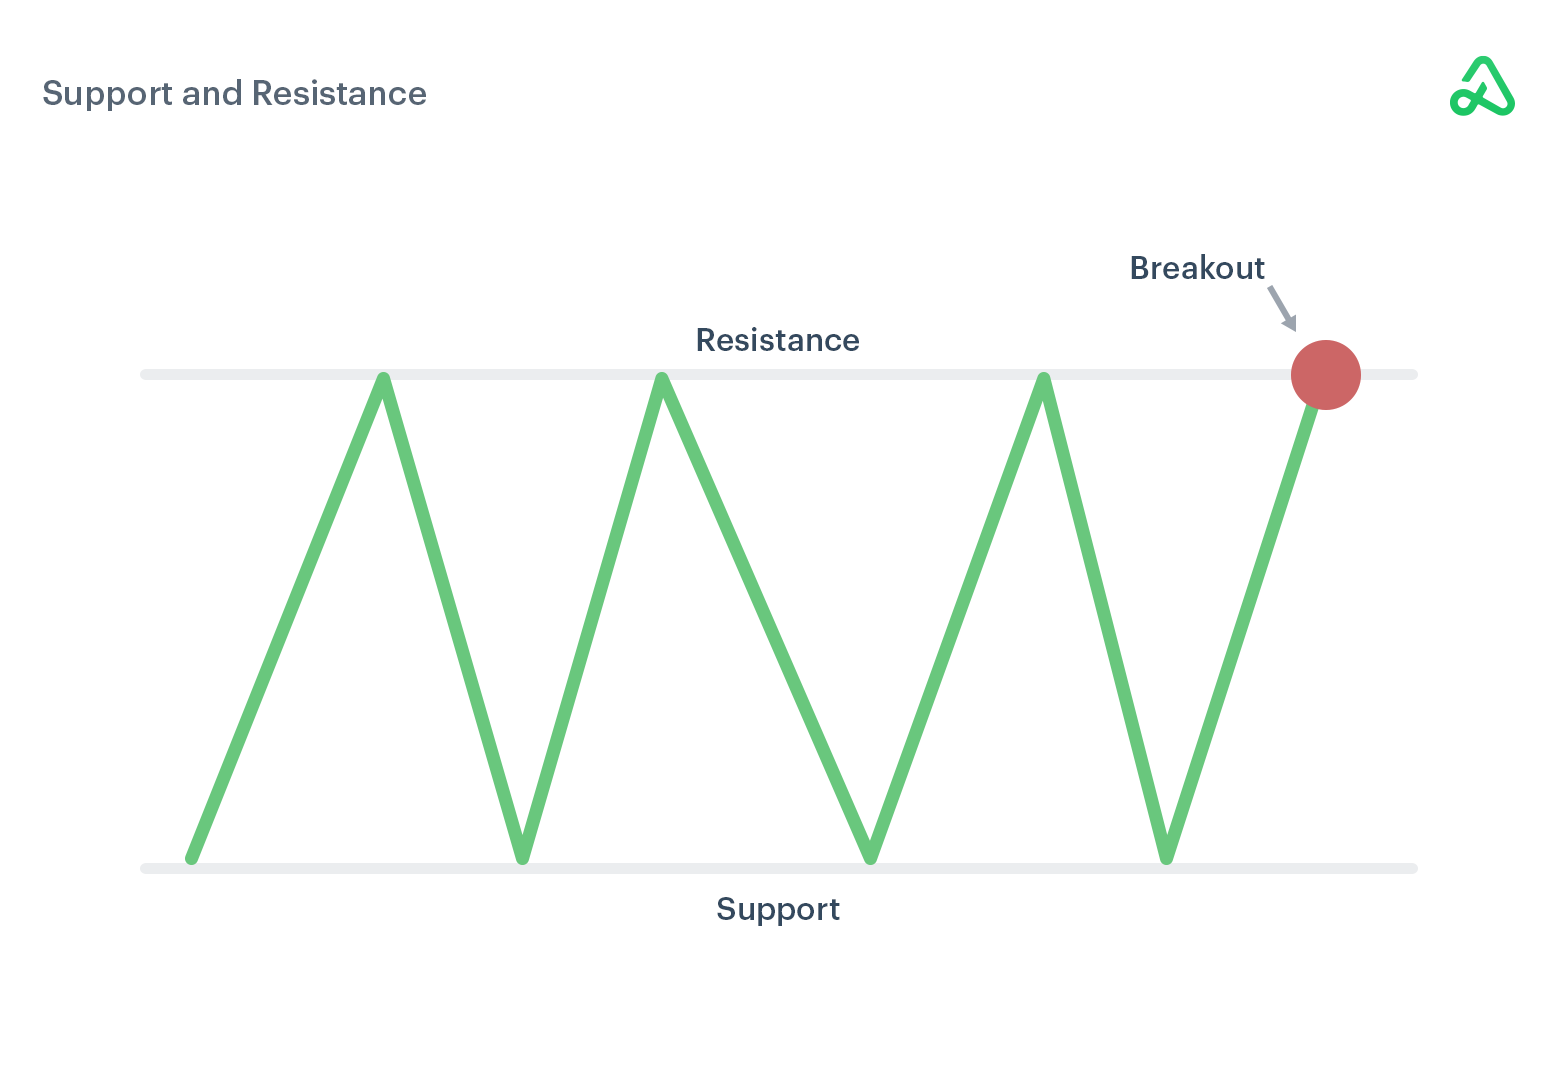 Support and Resistance with Breakout Visual Example